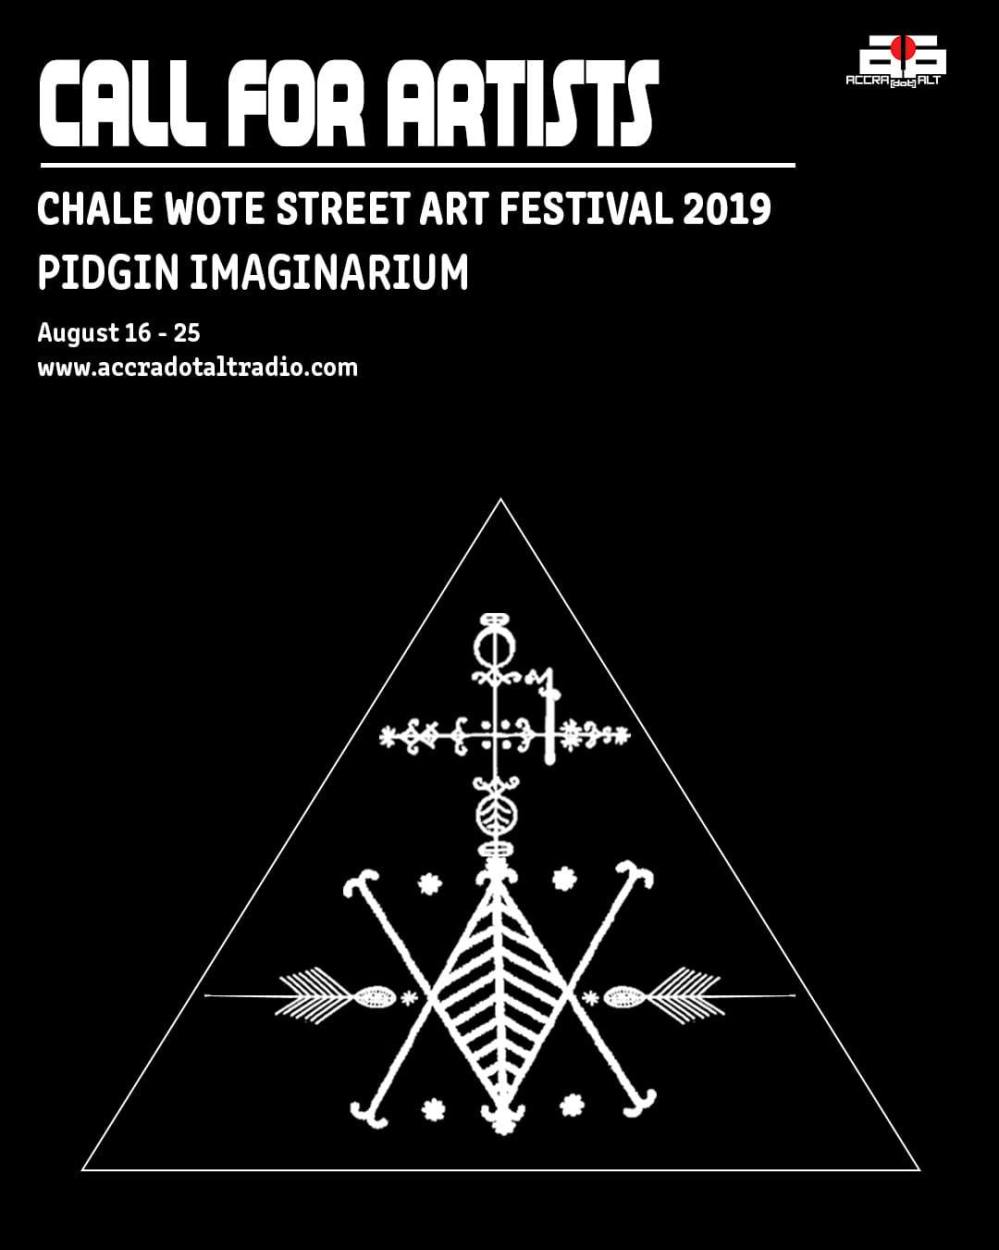 Chale Wote Festival, 2019 it really is ghana be great, and you don't want to miss it.